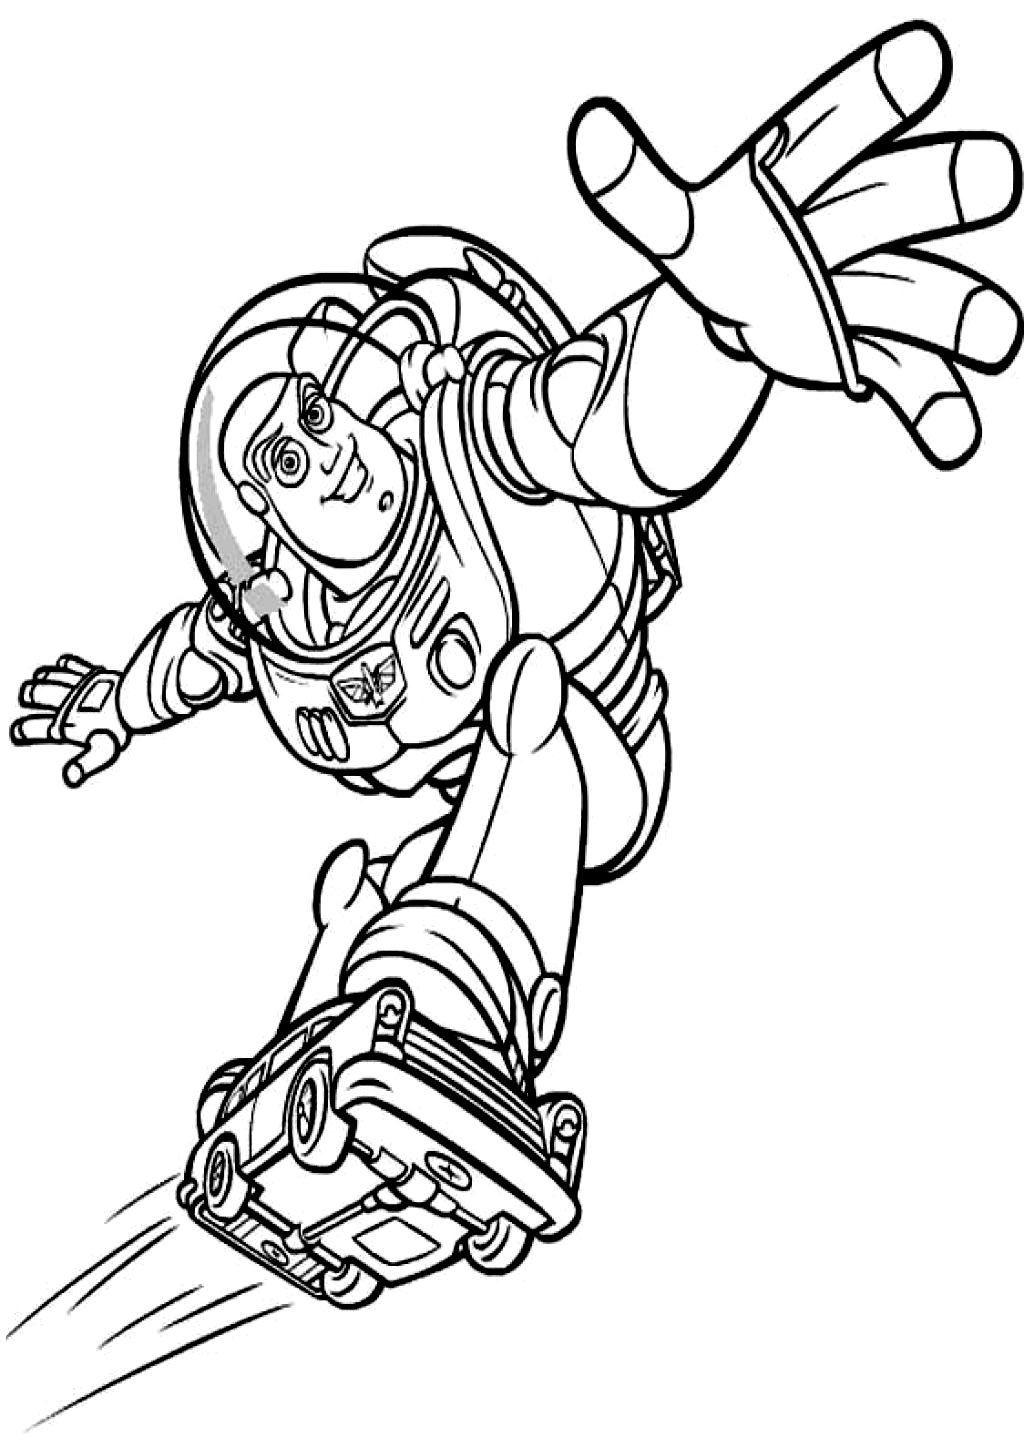 It is a graphic of Crush Buzz Lightyear Coloring